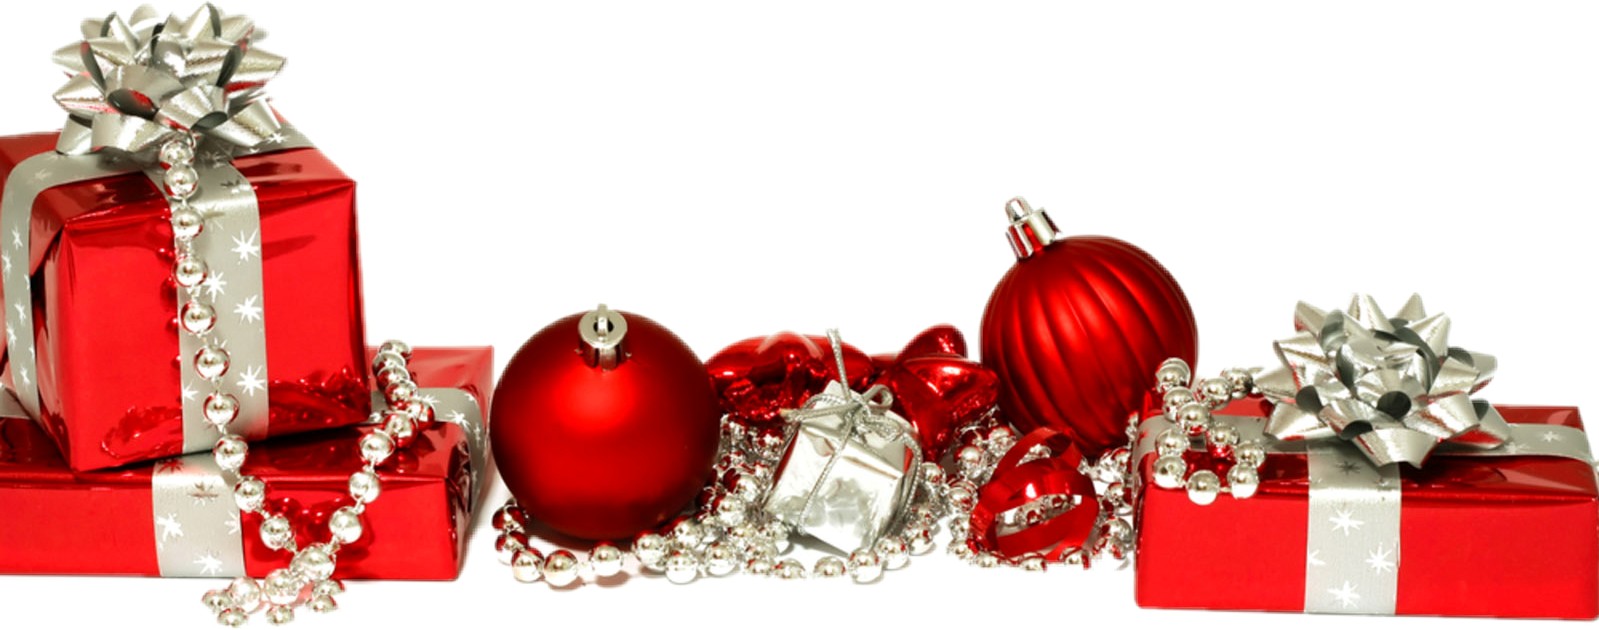 Pin by Abril on Christmas Backgrounds, Cards and Frames | Pinterest ...